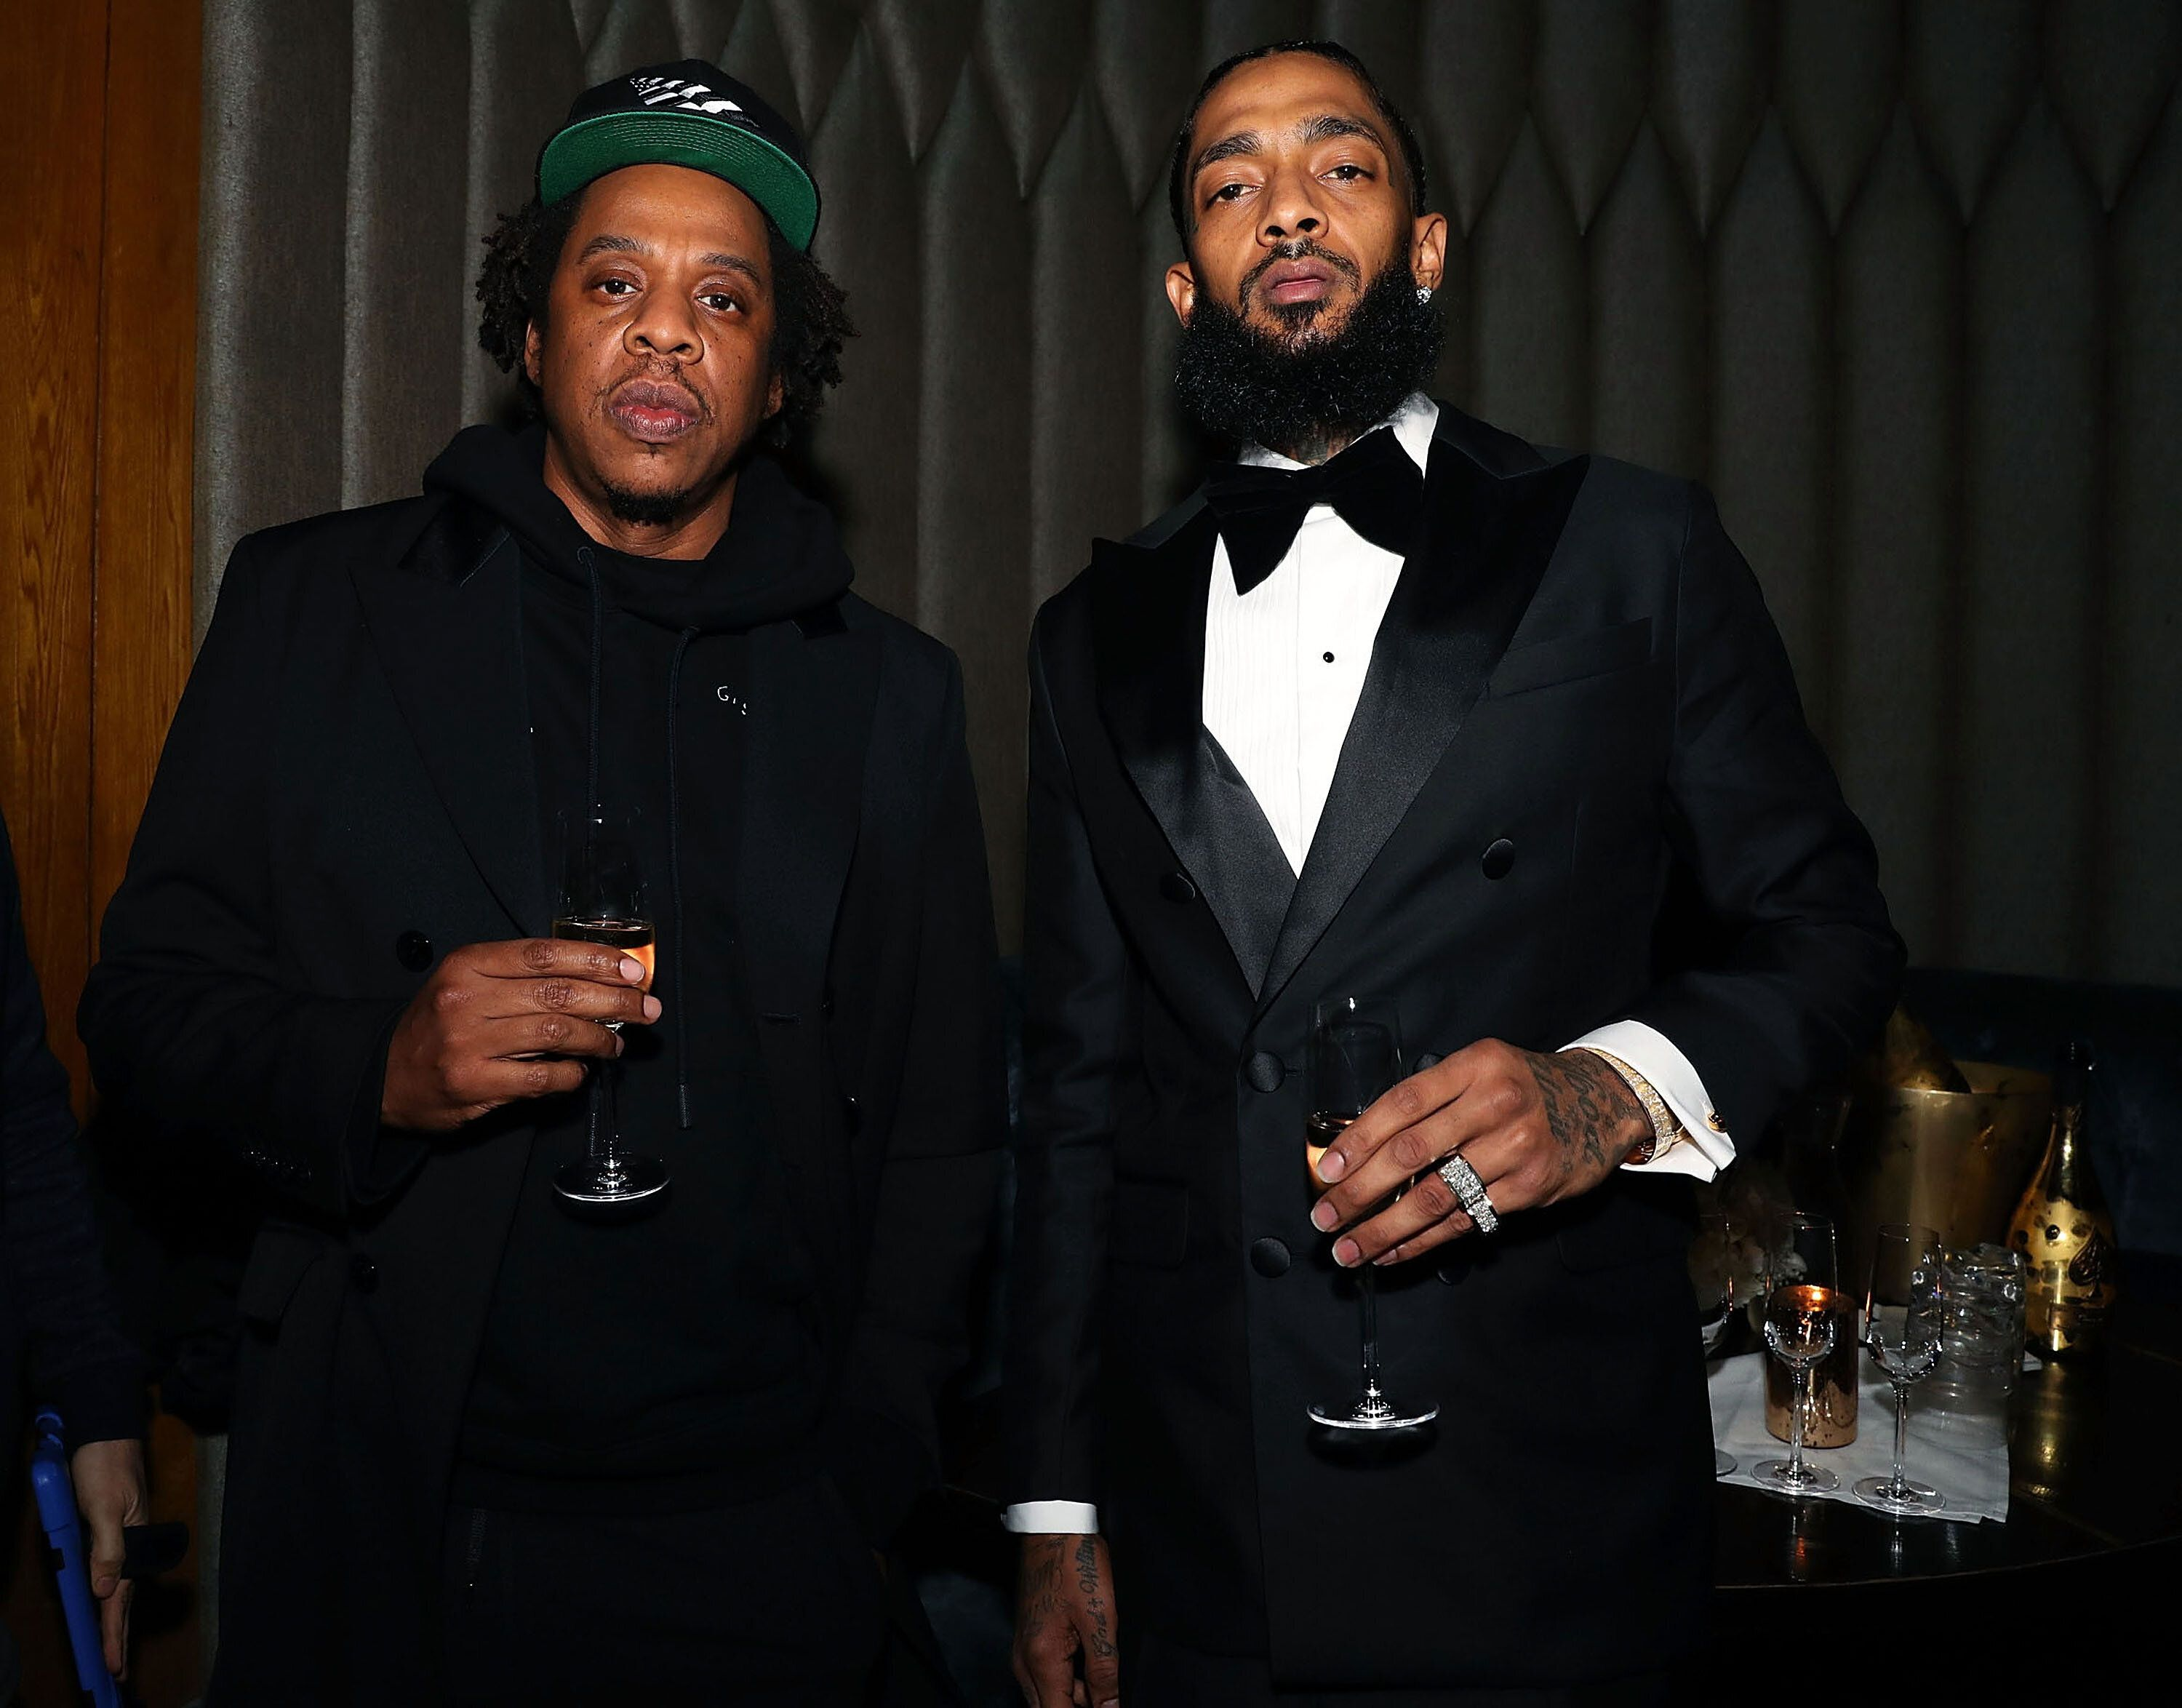 LOS ANGELES, CA - FEBRUARY 08:  Shawn 'Jay-Z' Carter and Nipsey Hussle attend Nipsey Hussle Grammy Celebration at The Peppermint Club on February 8, 2019 in Los Angeles, California.  (Photo by Shareif Ziyadat/Getty Images)